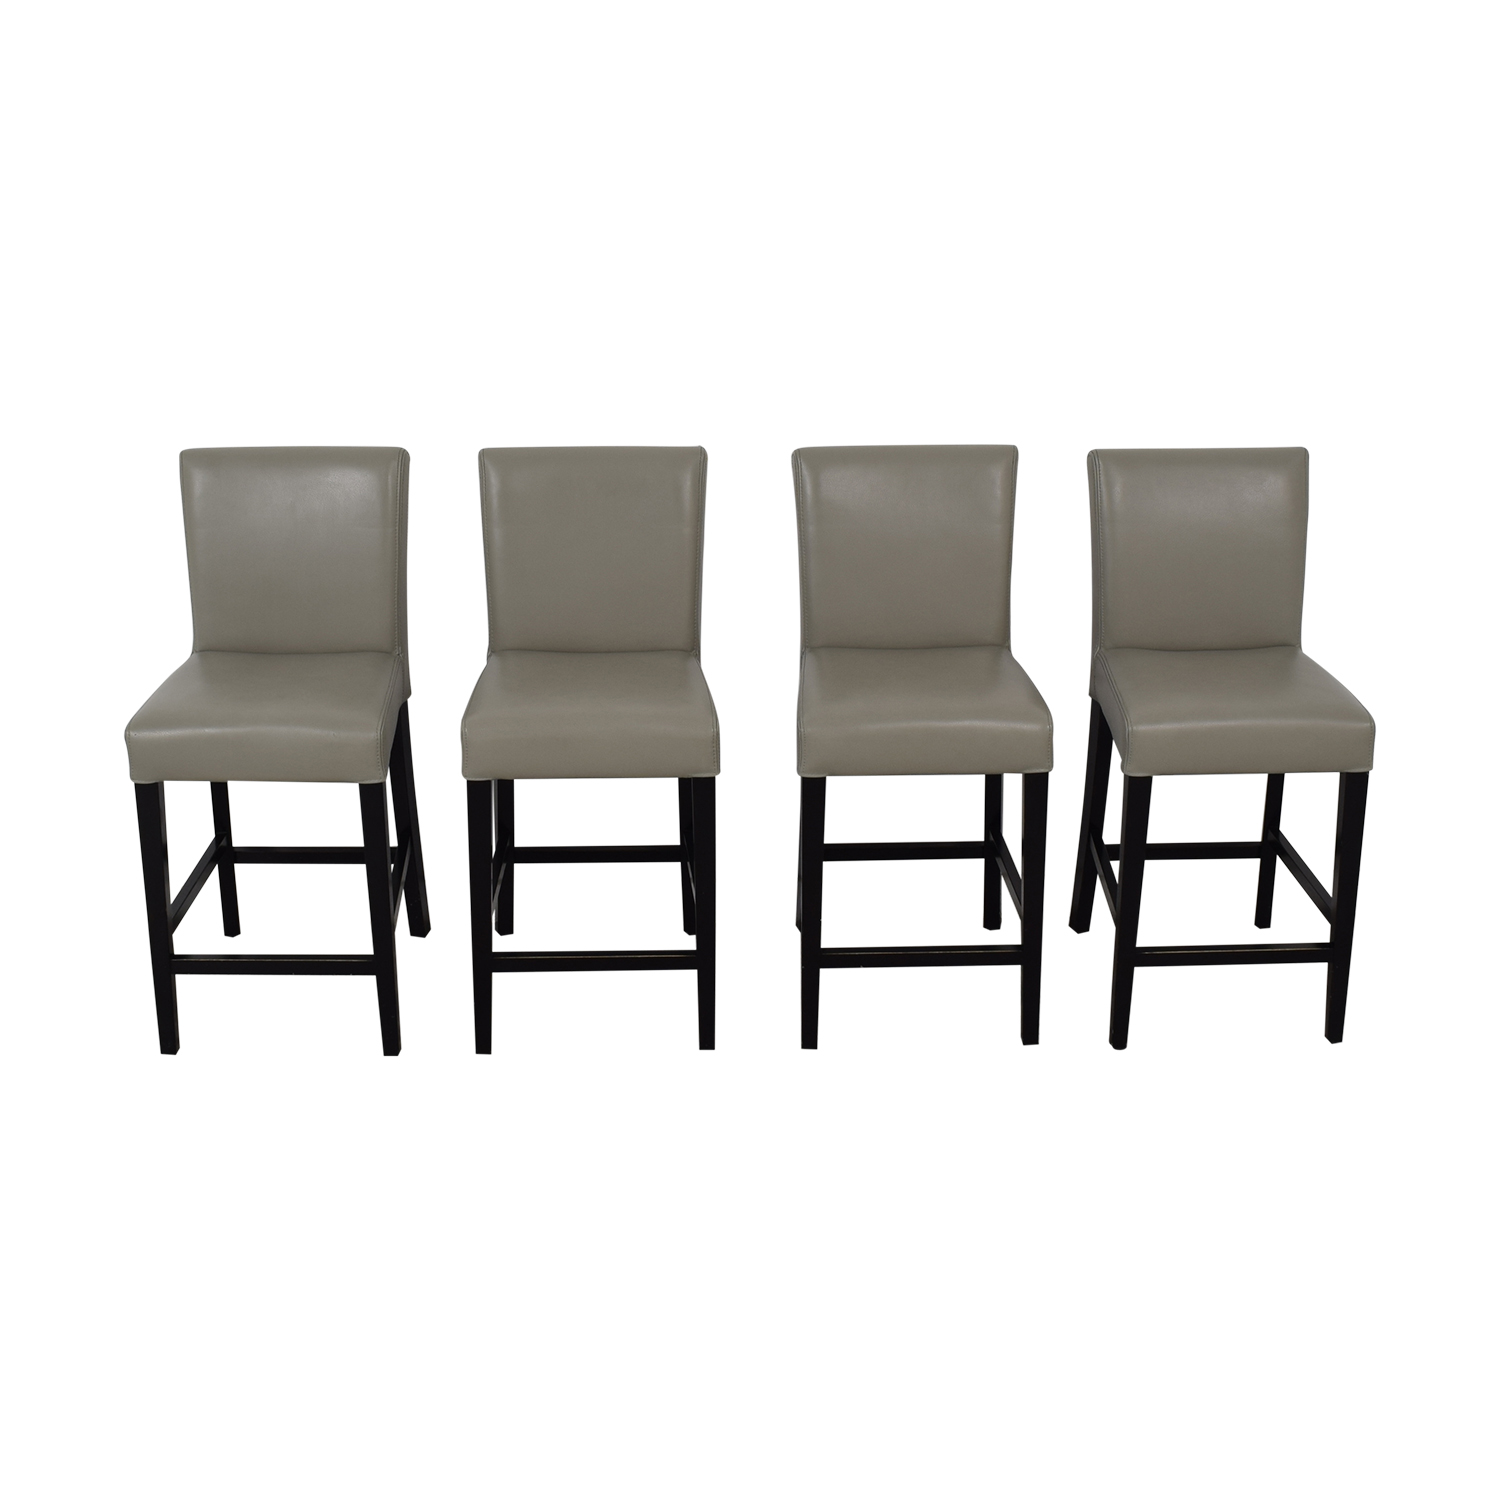 Grey Leather Stools for sale